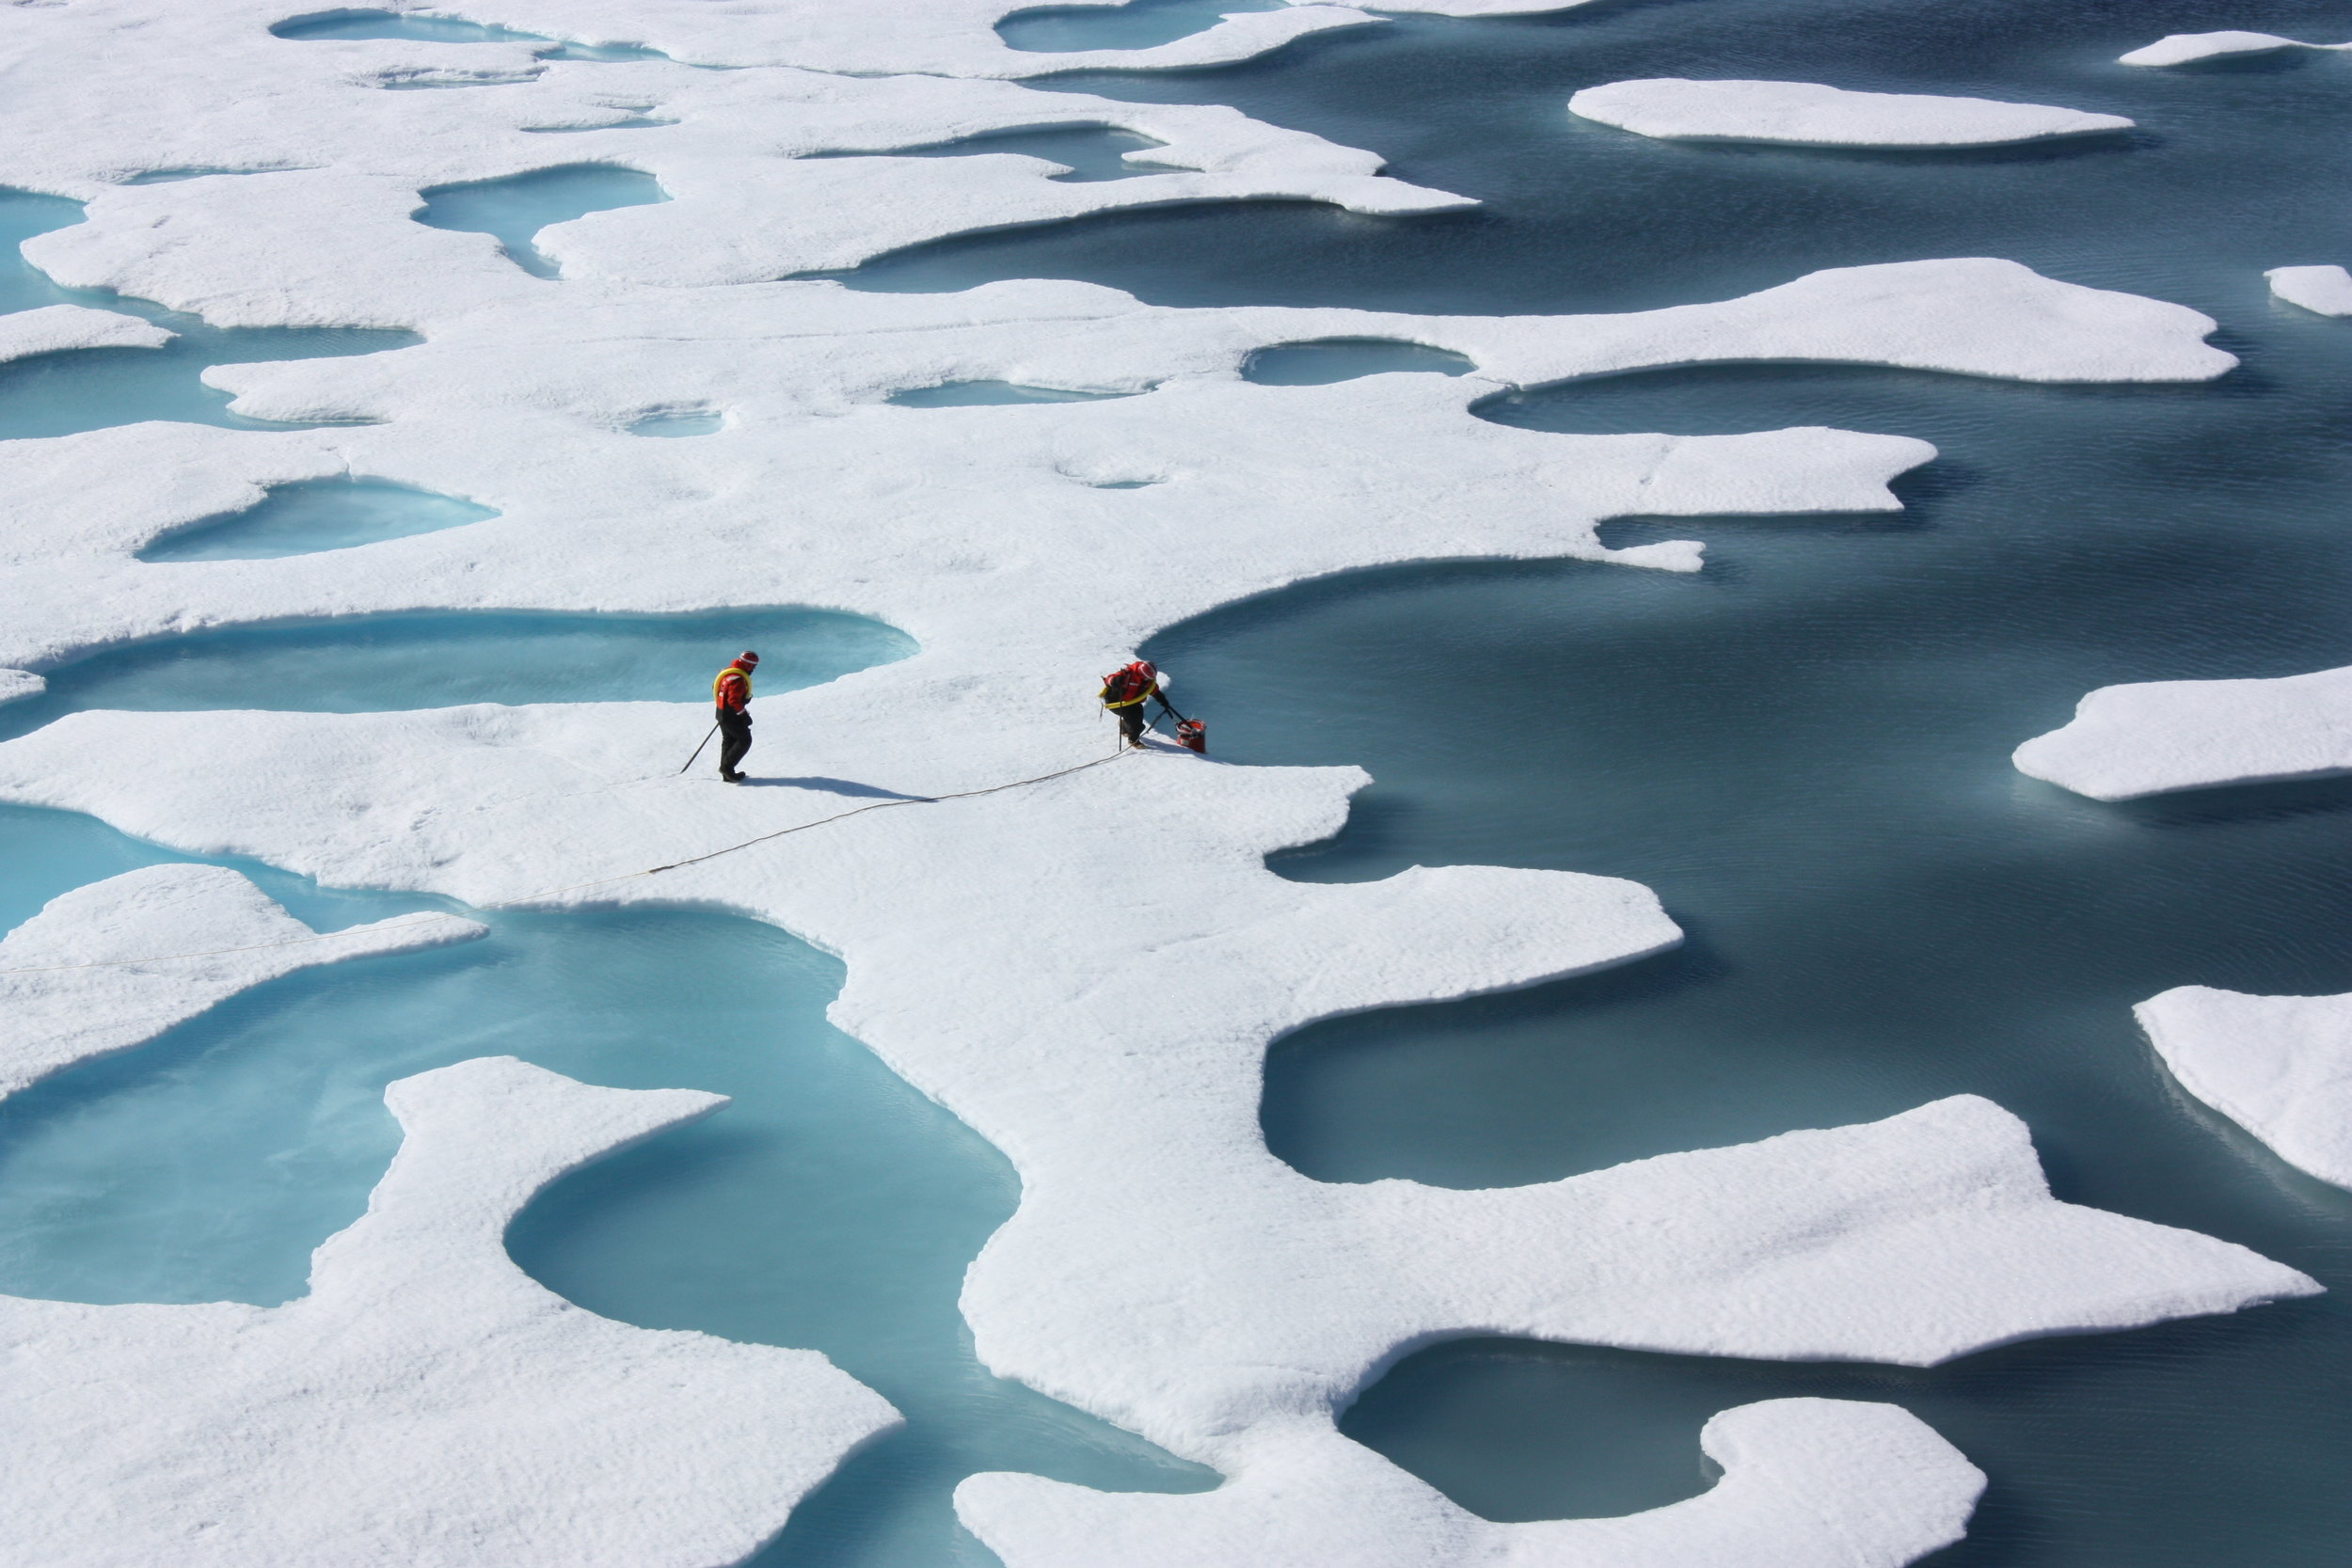 """NASA's """"Impacts of Climate on Ecosystems and Chemistry of the Arctic Pacific Environment"""" (ICESCAPE) mission investigated the effects of changing conditions in the Arctic in 2010 and 2011. Such research can then be used to inform future policy.   NASA/Flickr  (CC BY 2.0)"""